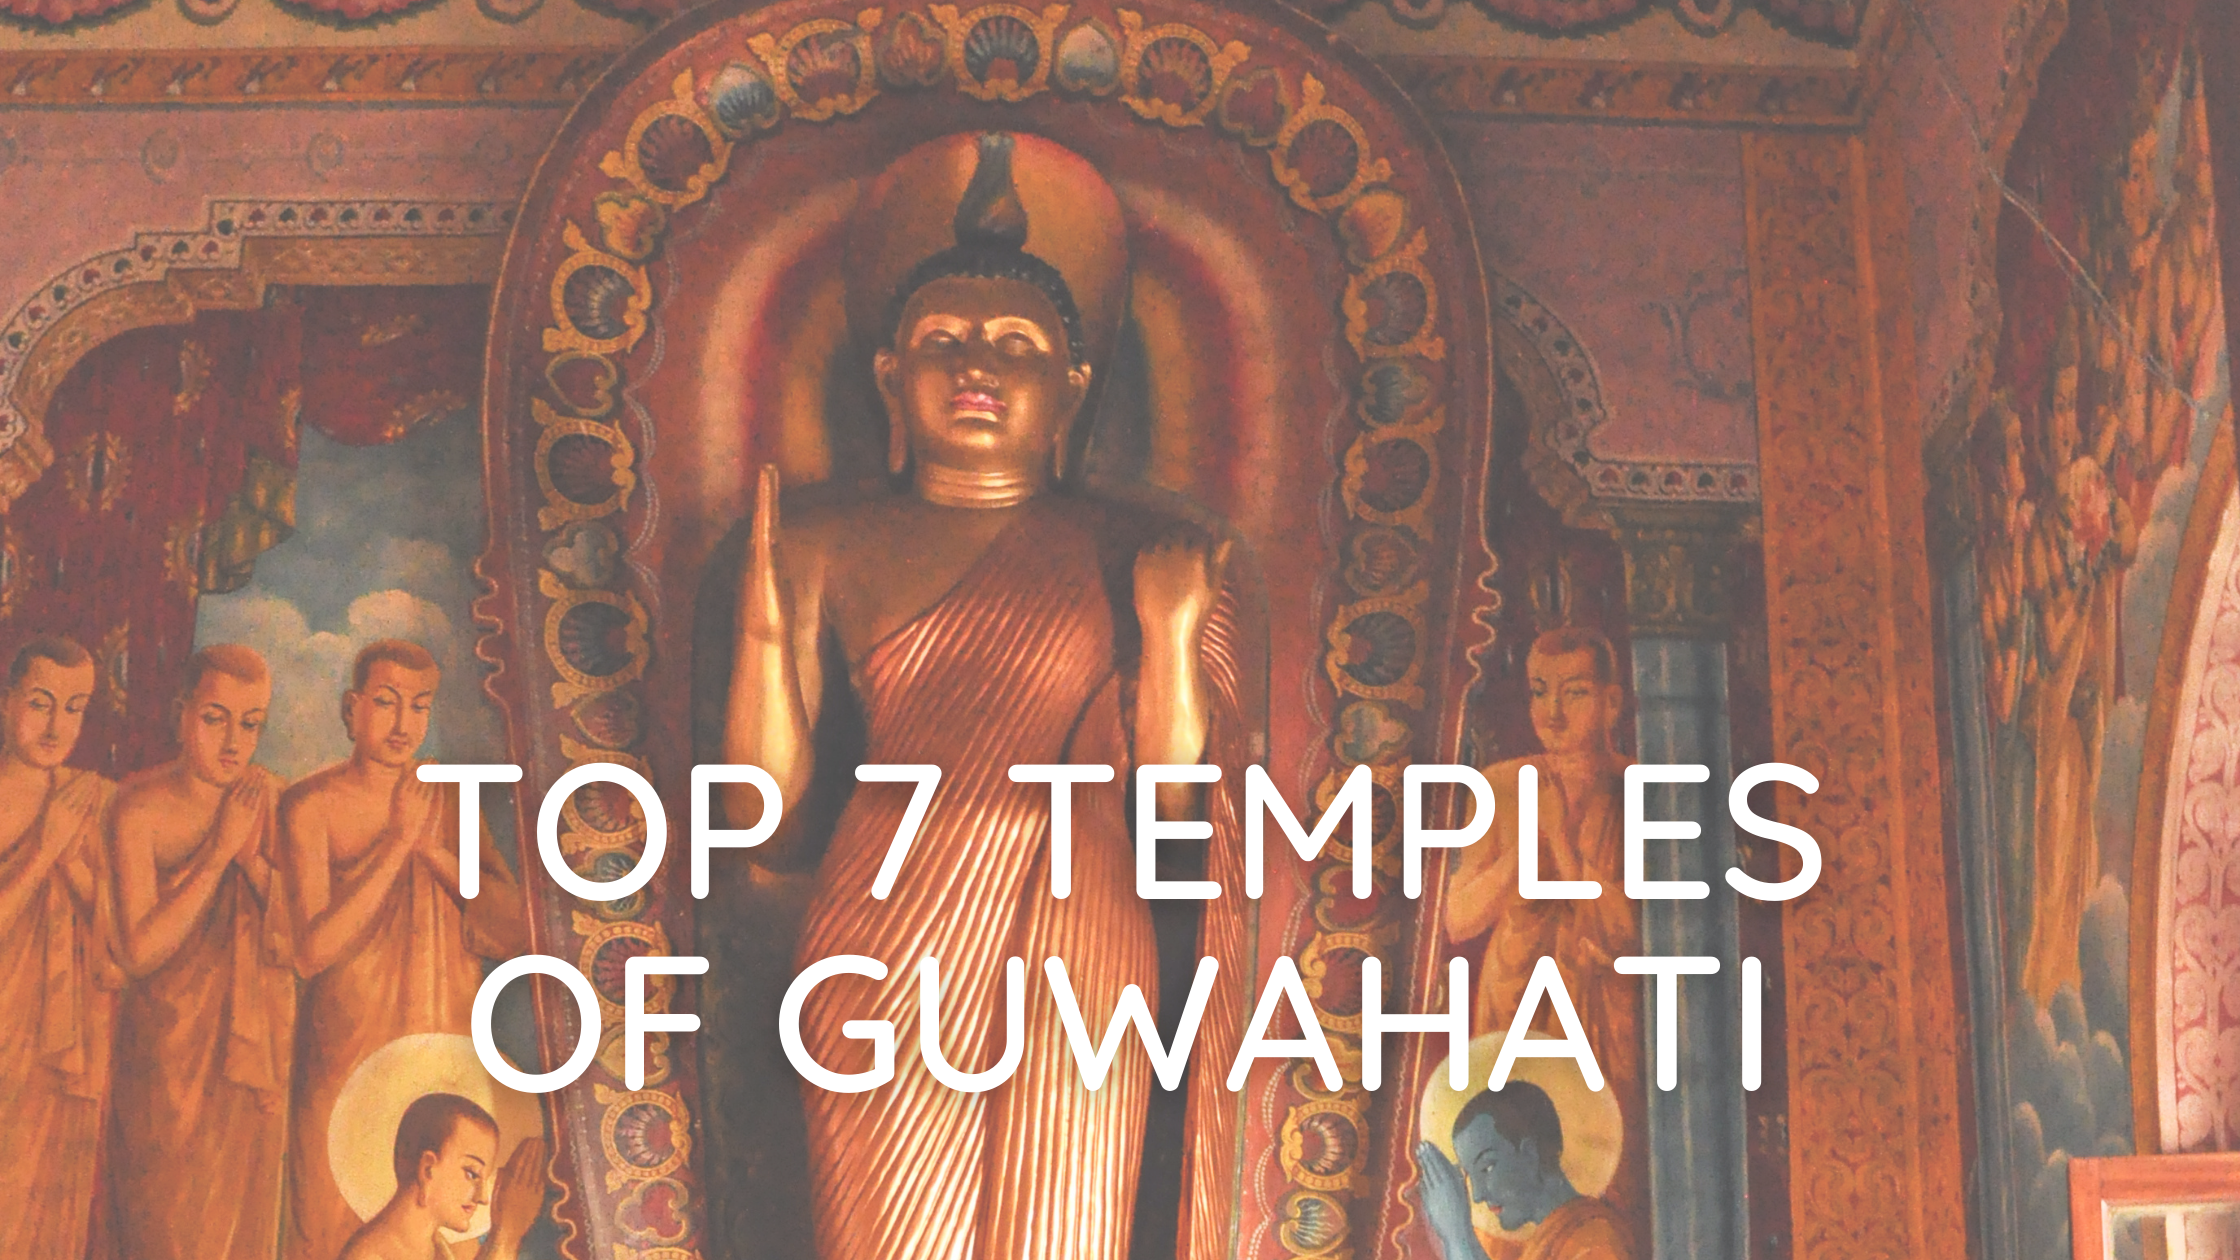 Top 7 temples to visit in Guwahati